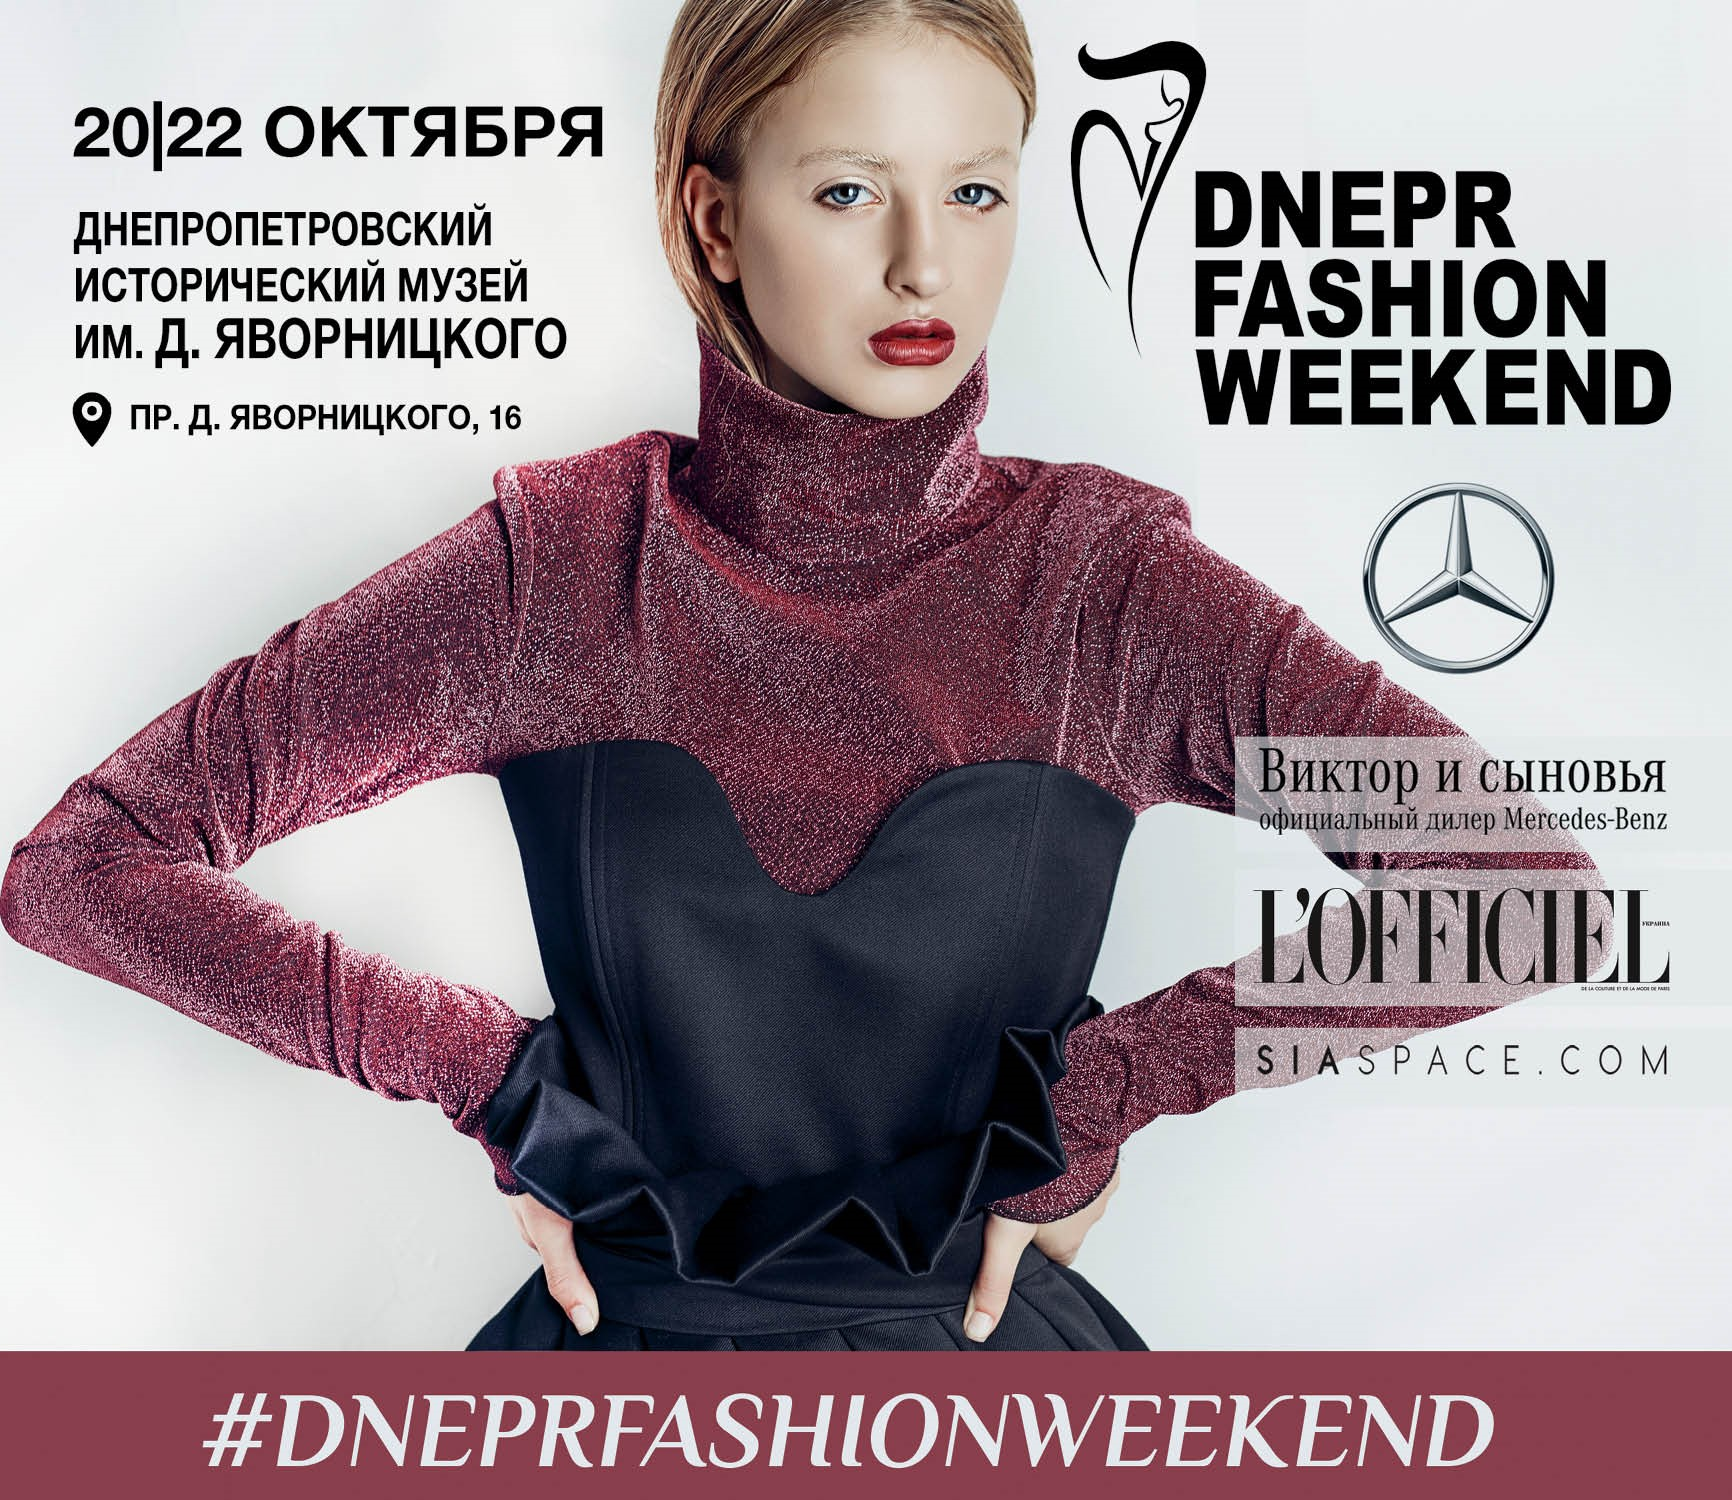 All 39 1 - Партнёр Dnepr Fashion Weekend: Naydenko Fashion School